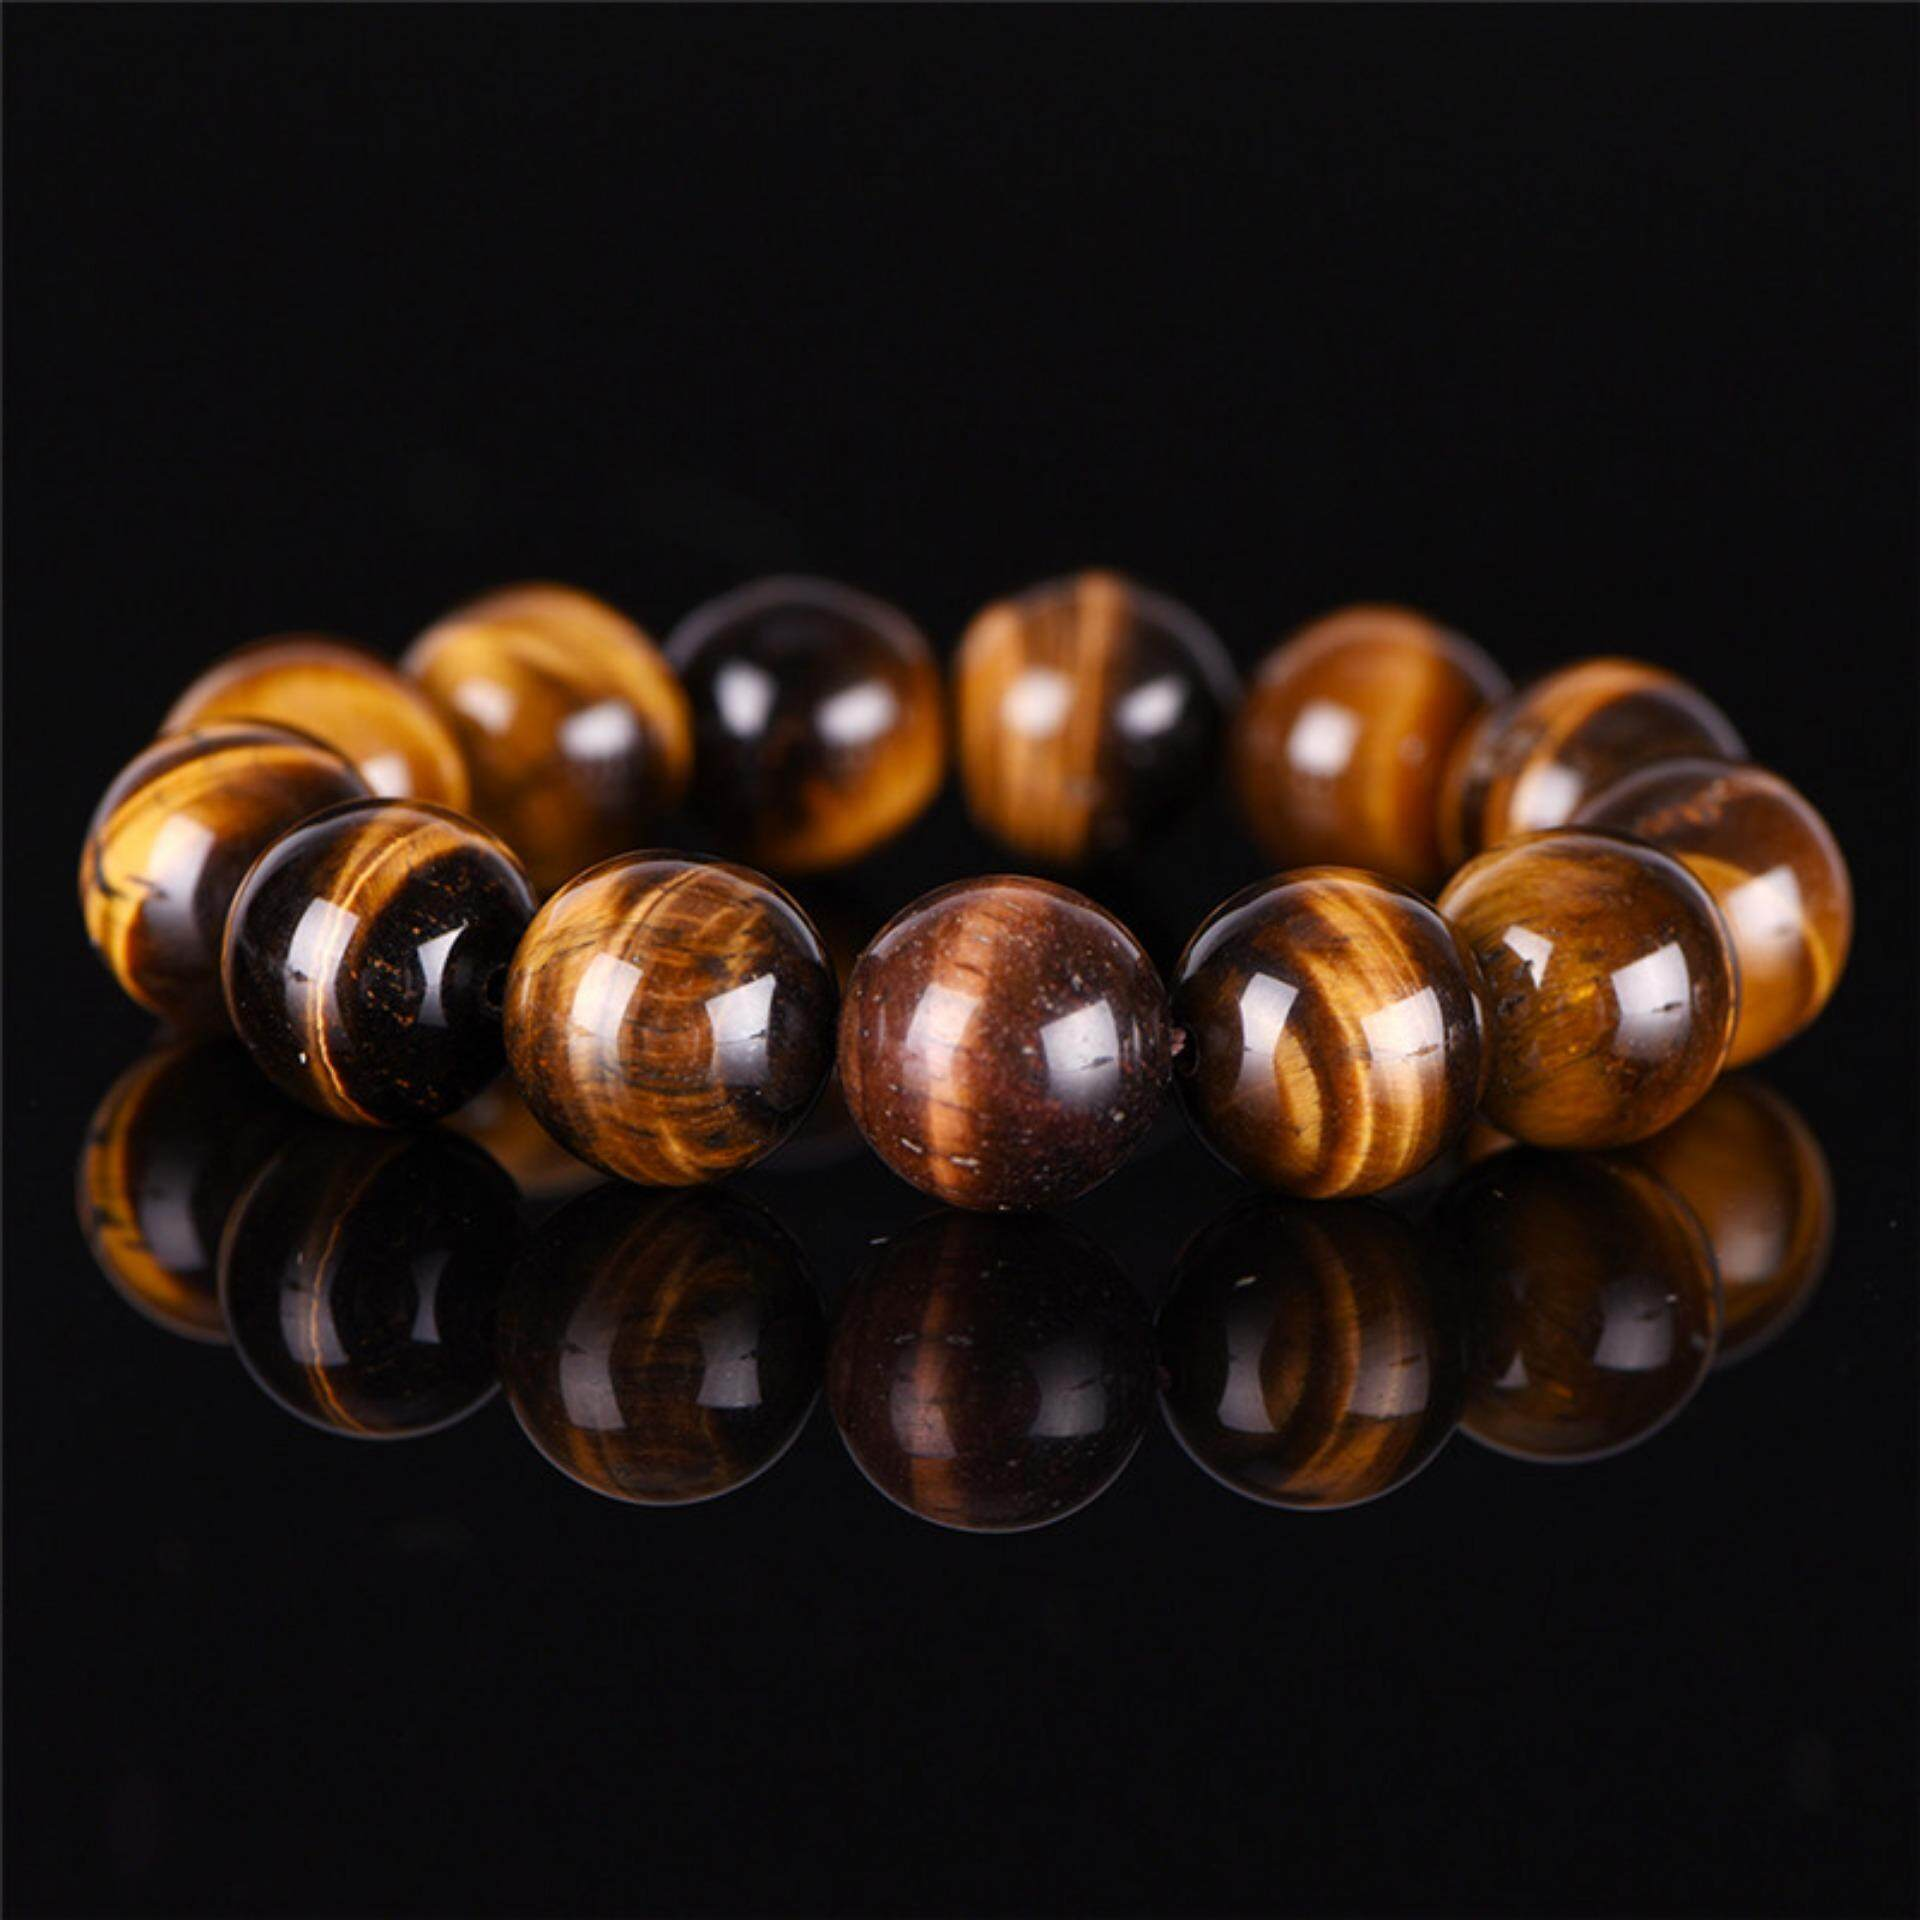 Natural Tiger Eye Stone Lucky Bless Beads Men Woman Jewelry Bracelet Bangle Chic 6mm By Magical House.